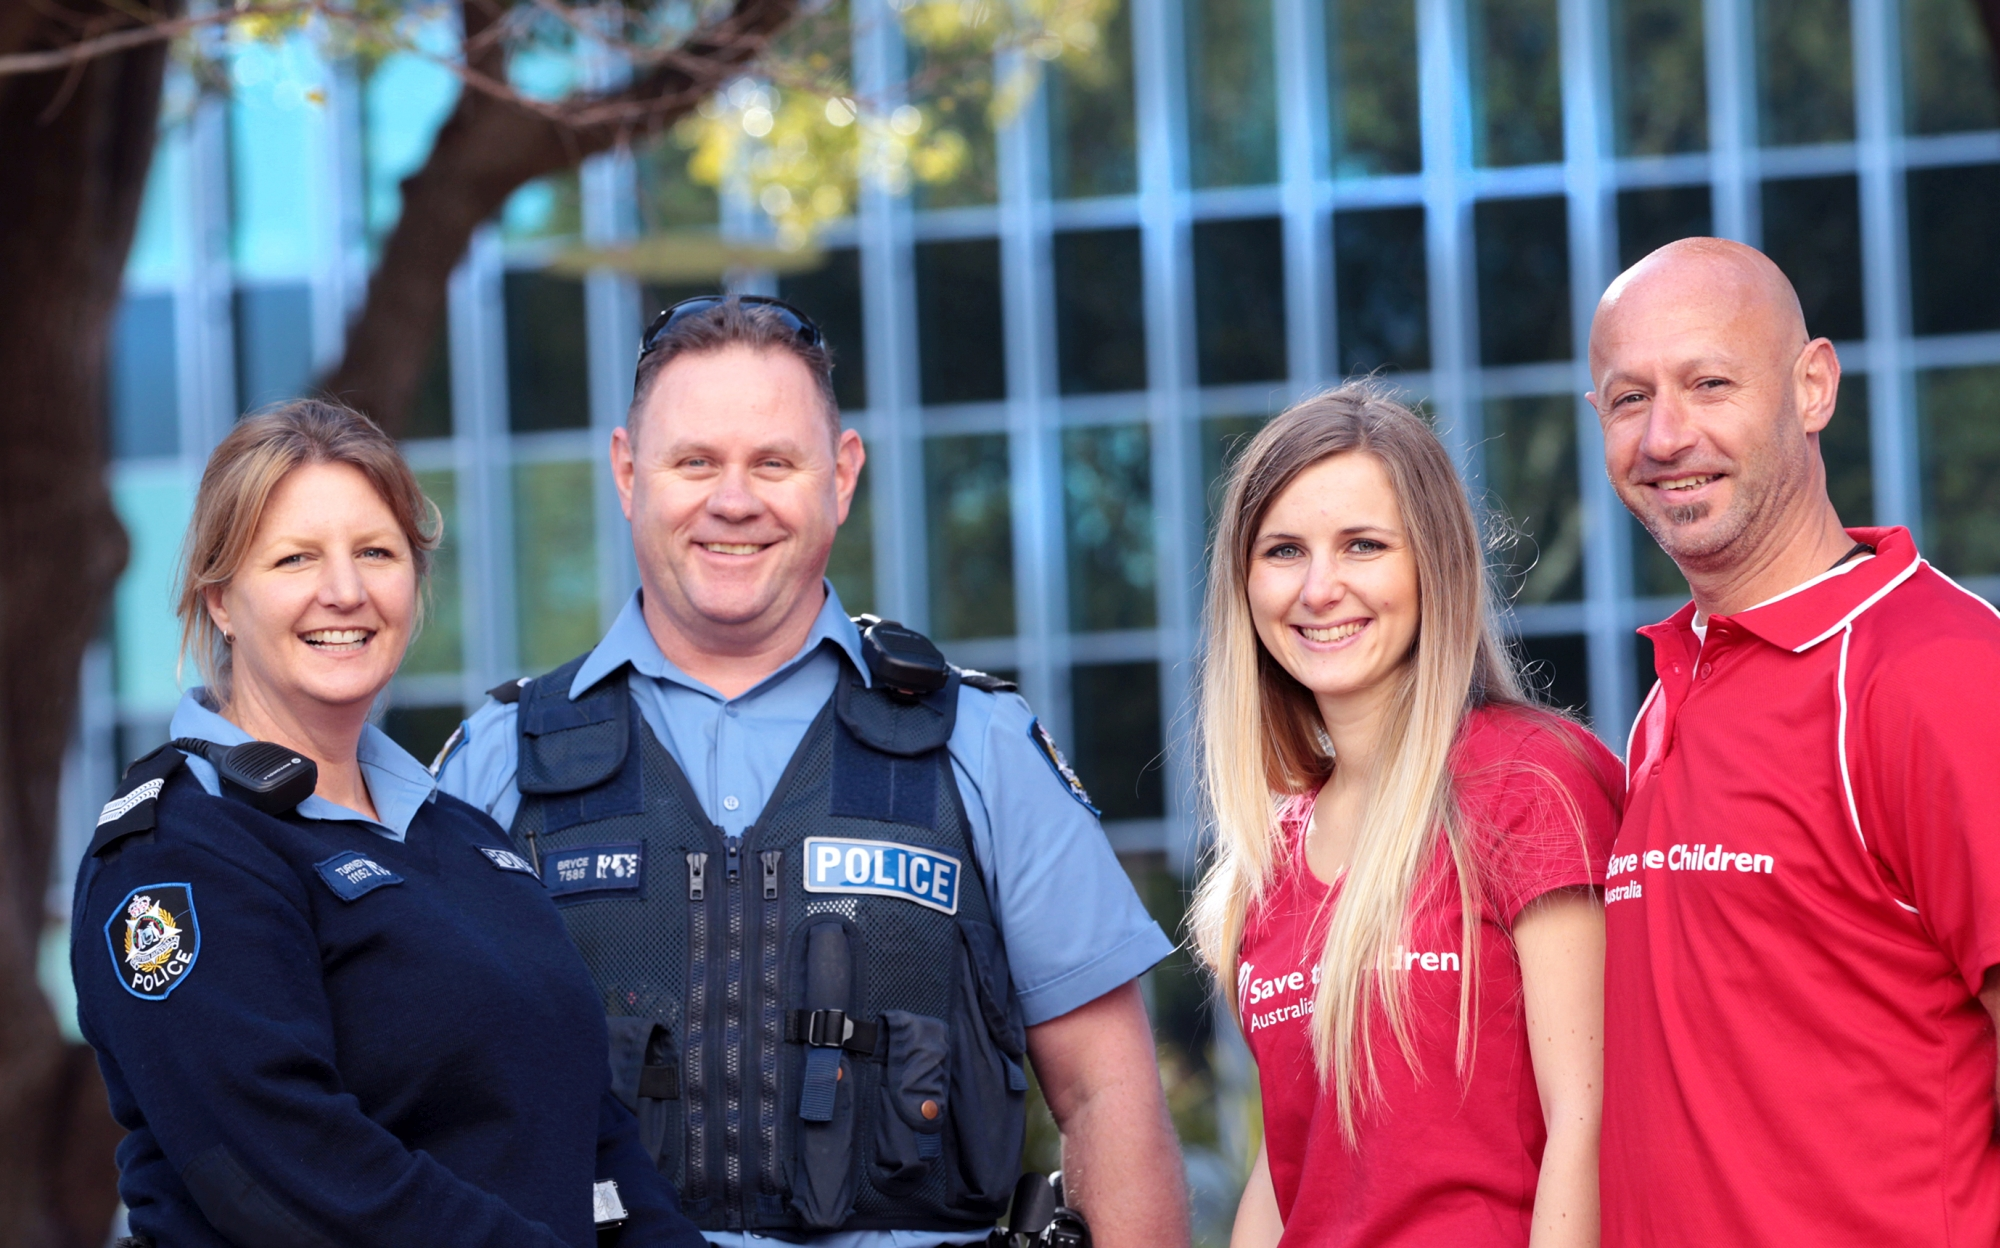 Youth crime intervention officers Kay Turner and Kim Bryce from Armadale Police with Save the Children co-ordinator for Aboriginal services Karina Chicote and youth worker Steve Dyson.